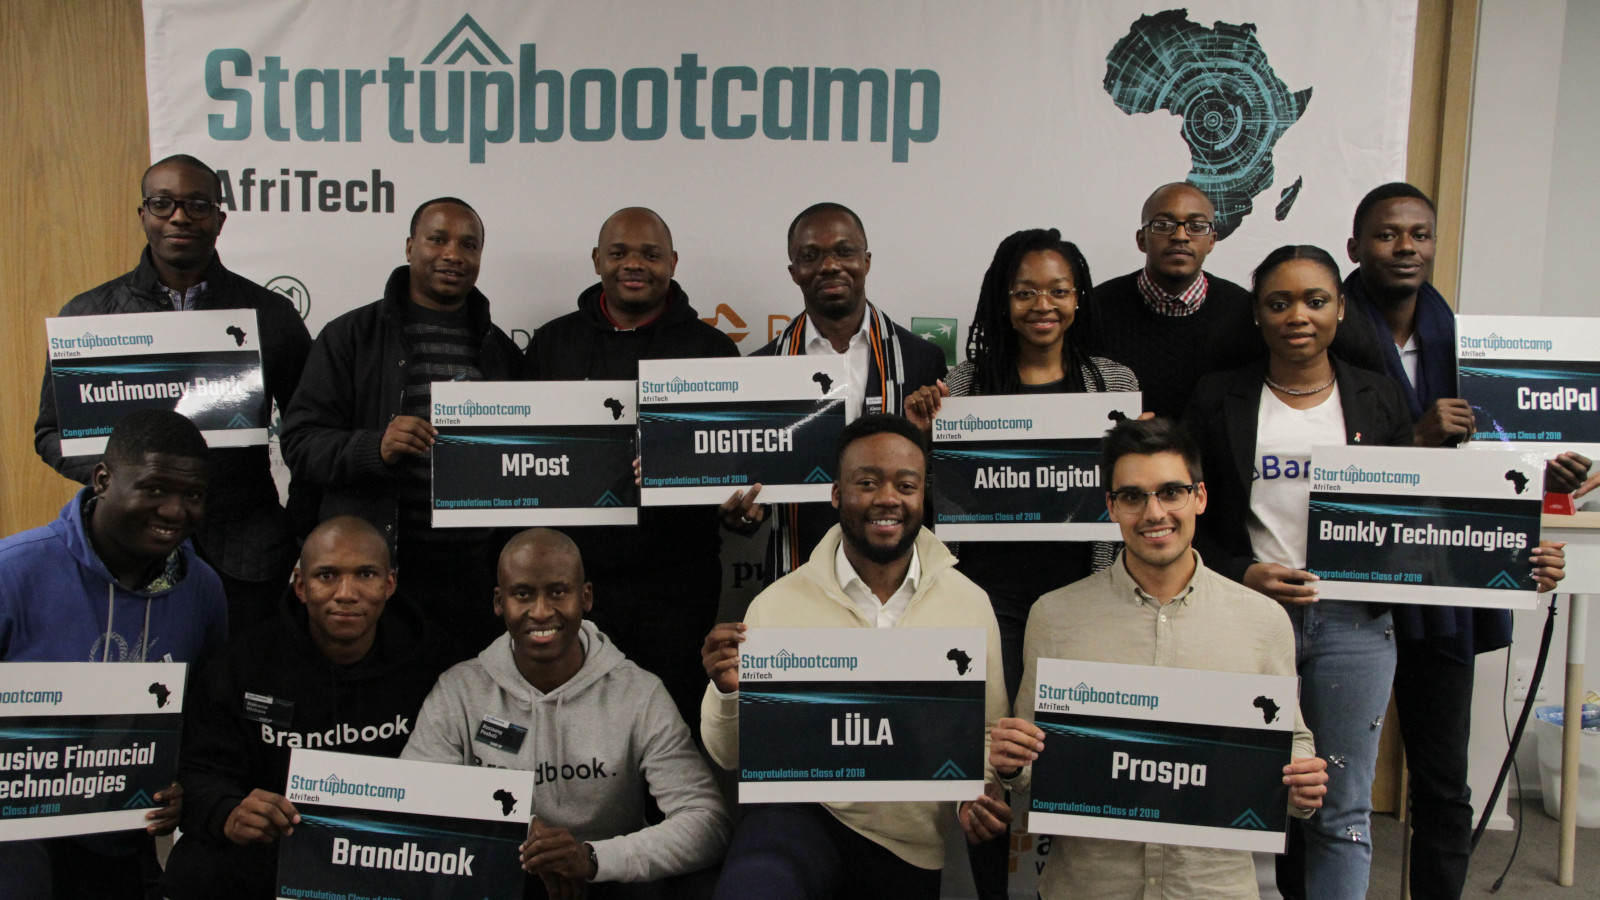 https://digitechgroupci.com/wp-content/uploads/2019/01/The-Top-10-African-Innovators-Selected-for-Global-Accelerator-Startupbootcamp-AfriTech-2018-1.jpg